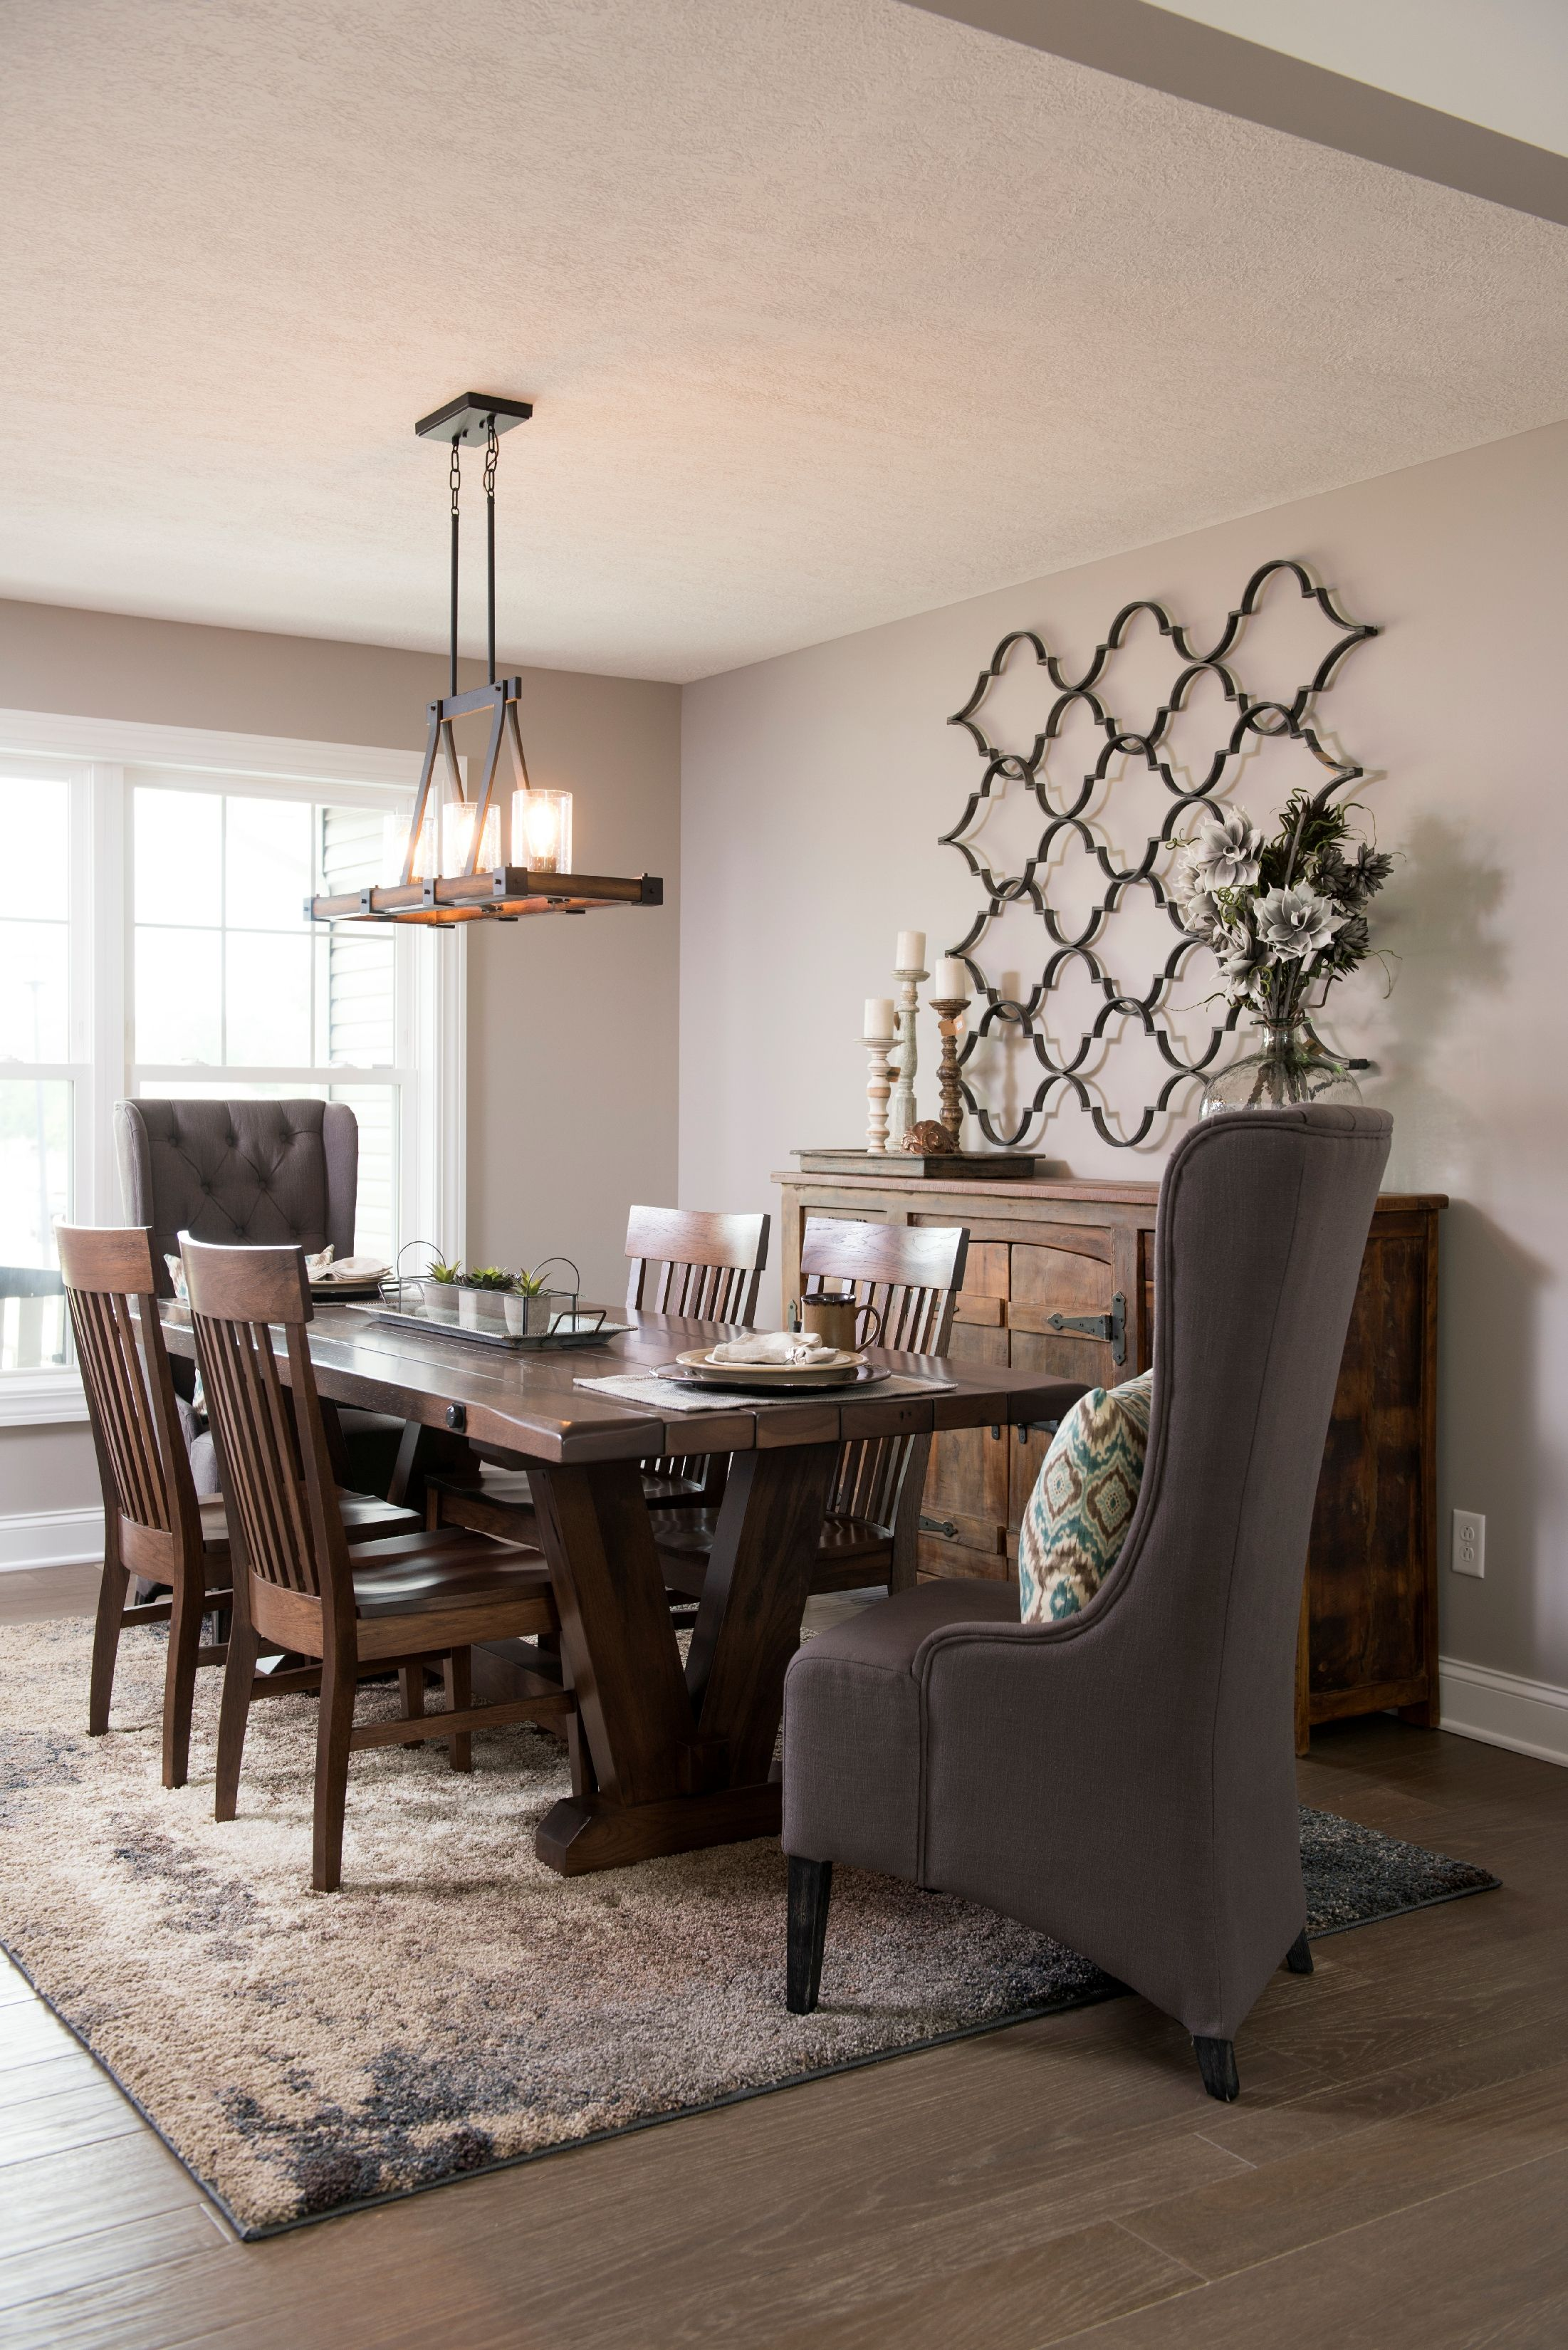 Custom Rug Rustic Traditional Dining Room Set With Reclaimed Prepossessing Traditional Dining Room Chairs Design Ideas